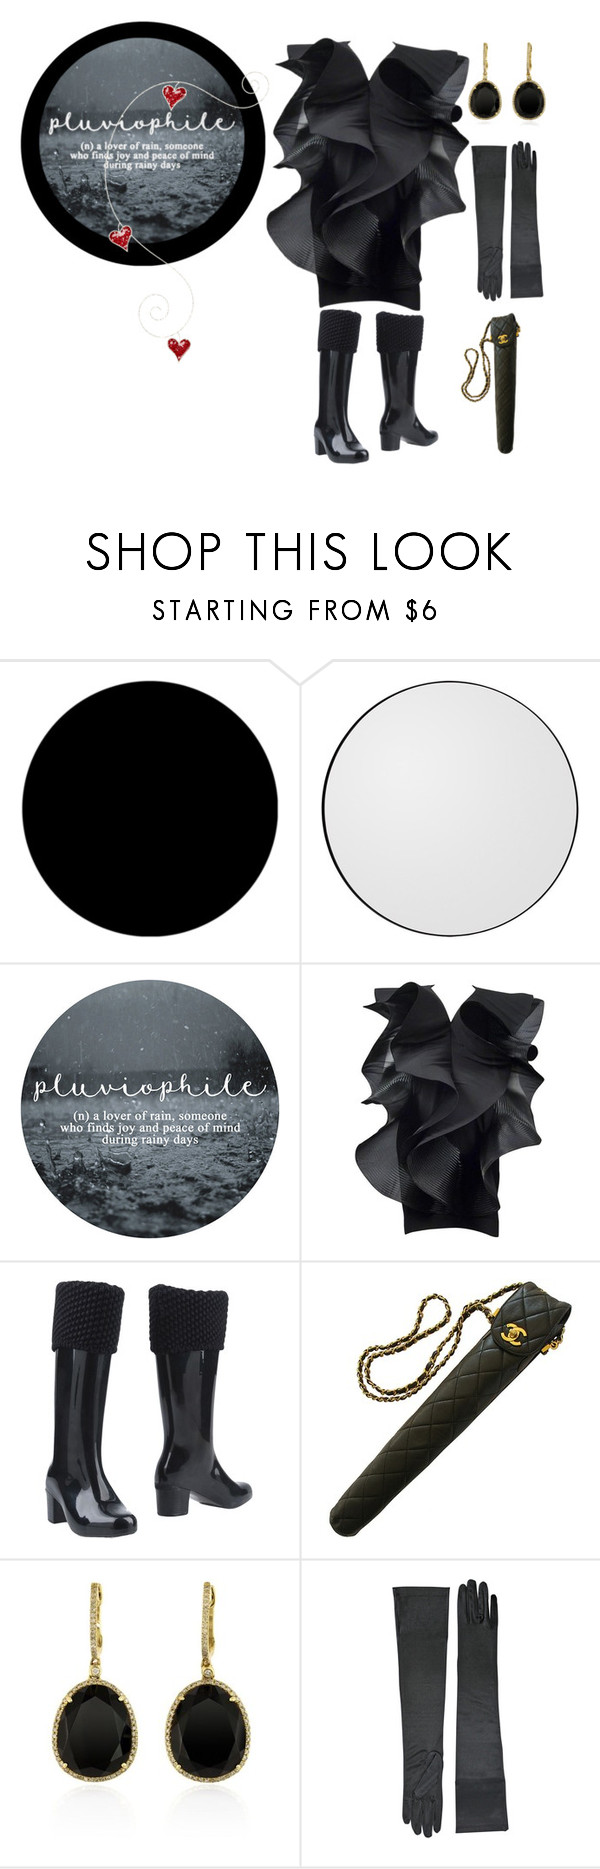 """Pluviophile"" by semplicementefashion ❤ liked on Polyvore featuring Wall Pops!, AYTM, Pierre Cardin, Melissa, Chanel and Effy Jewelry"